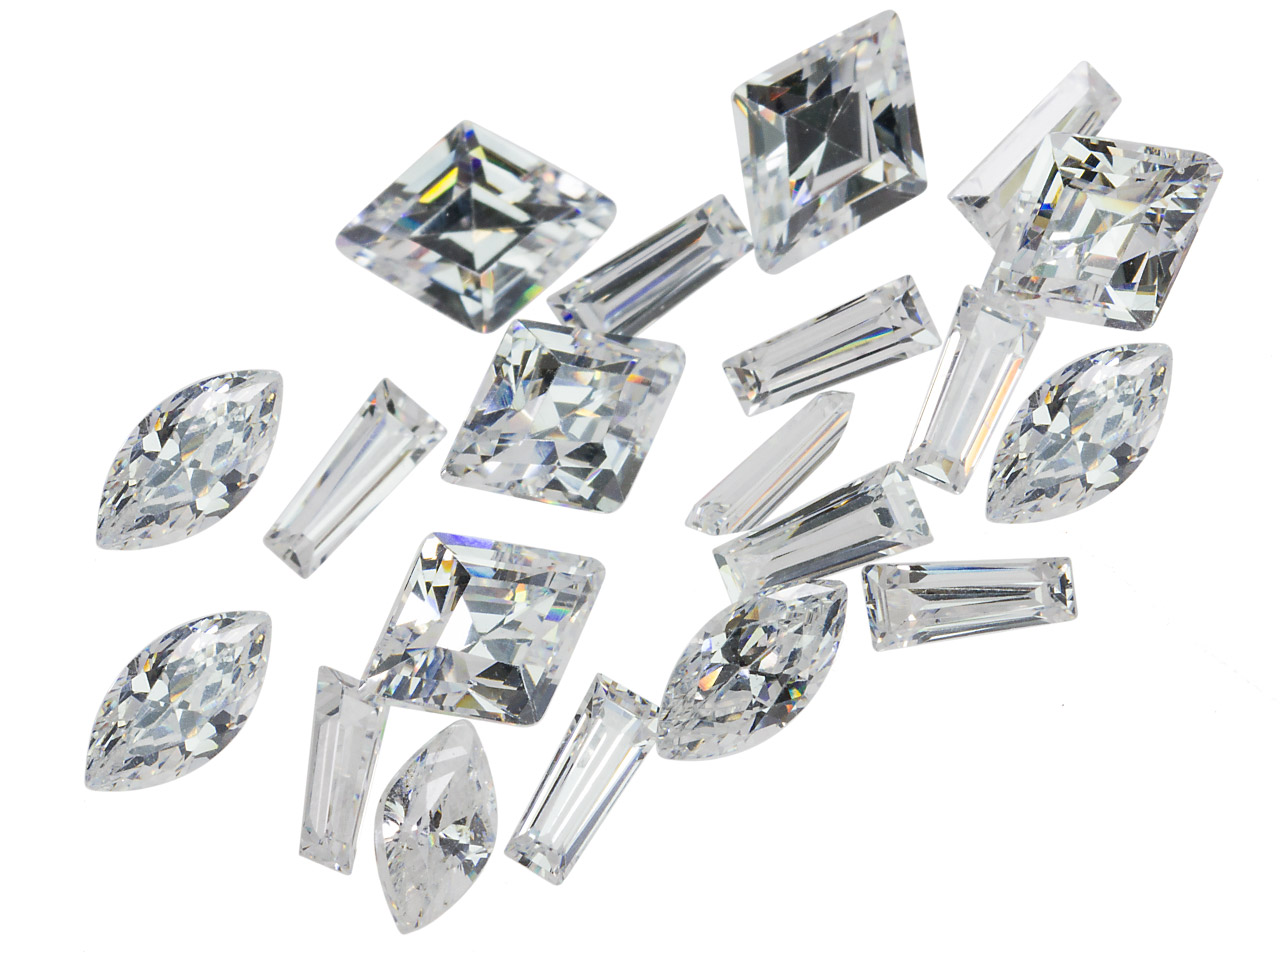 White Cz, Mixed Shapes, Pack of 20